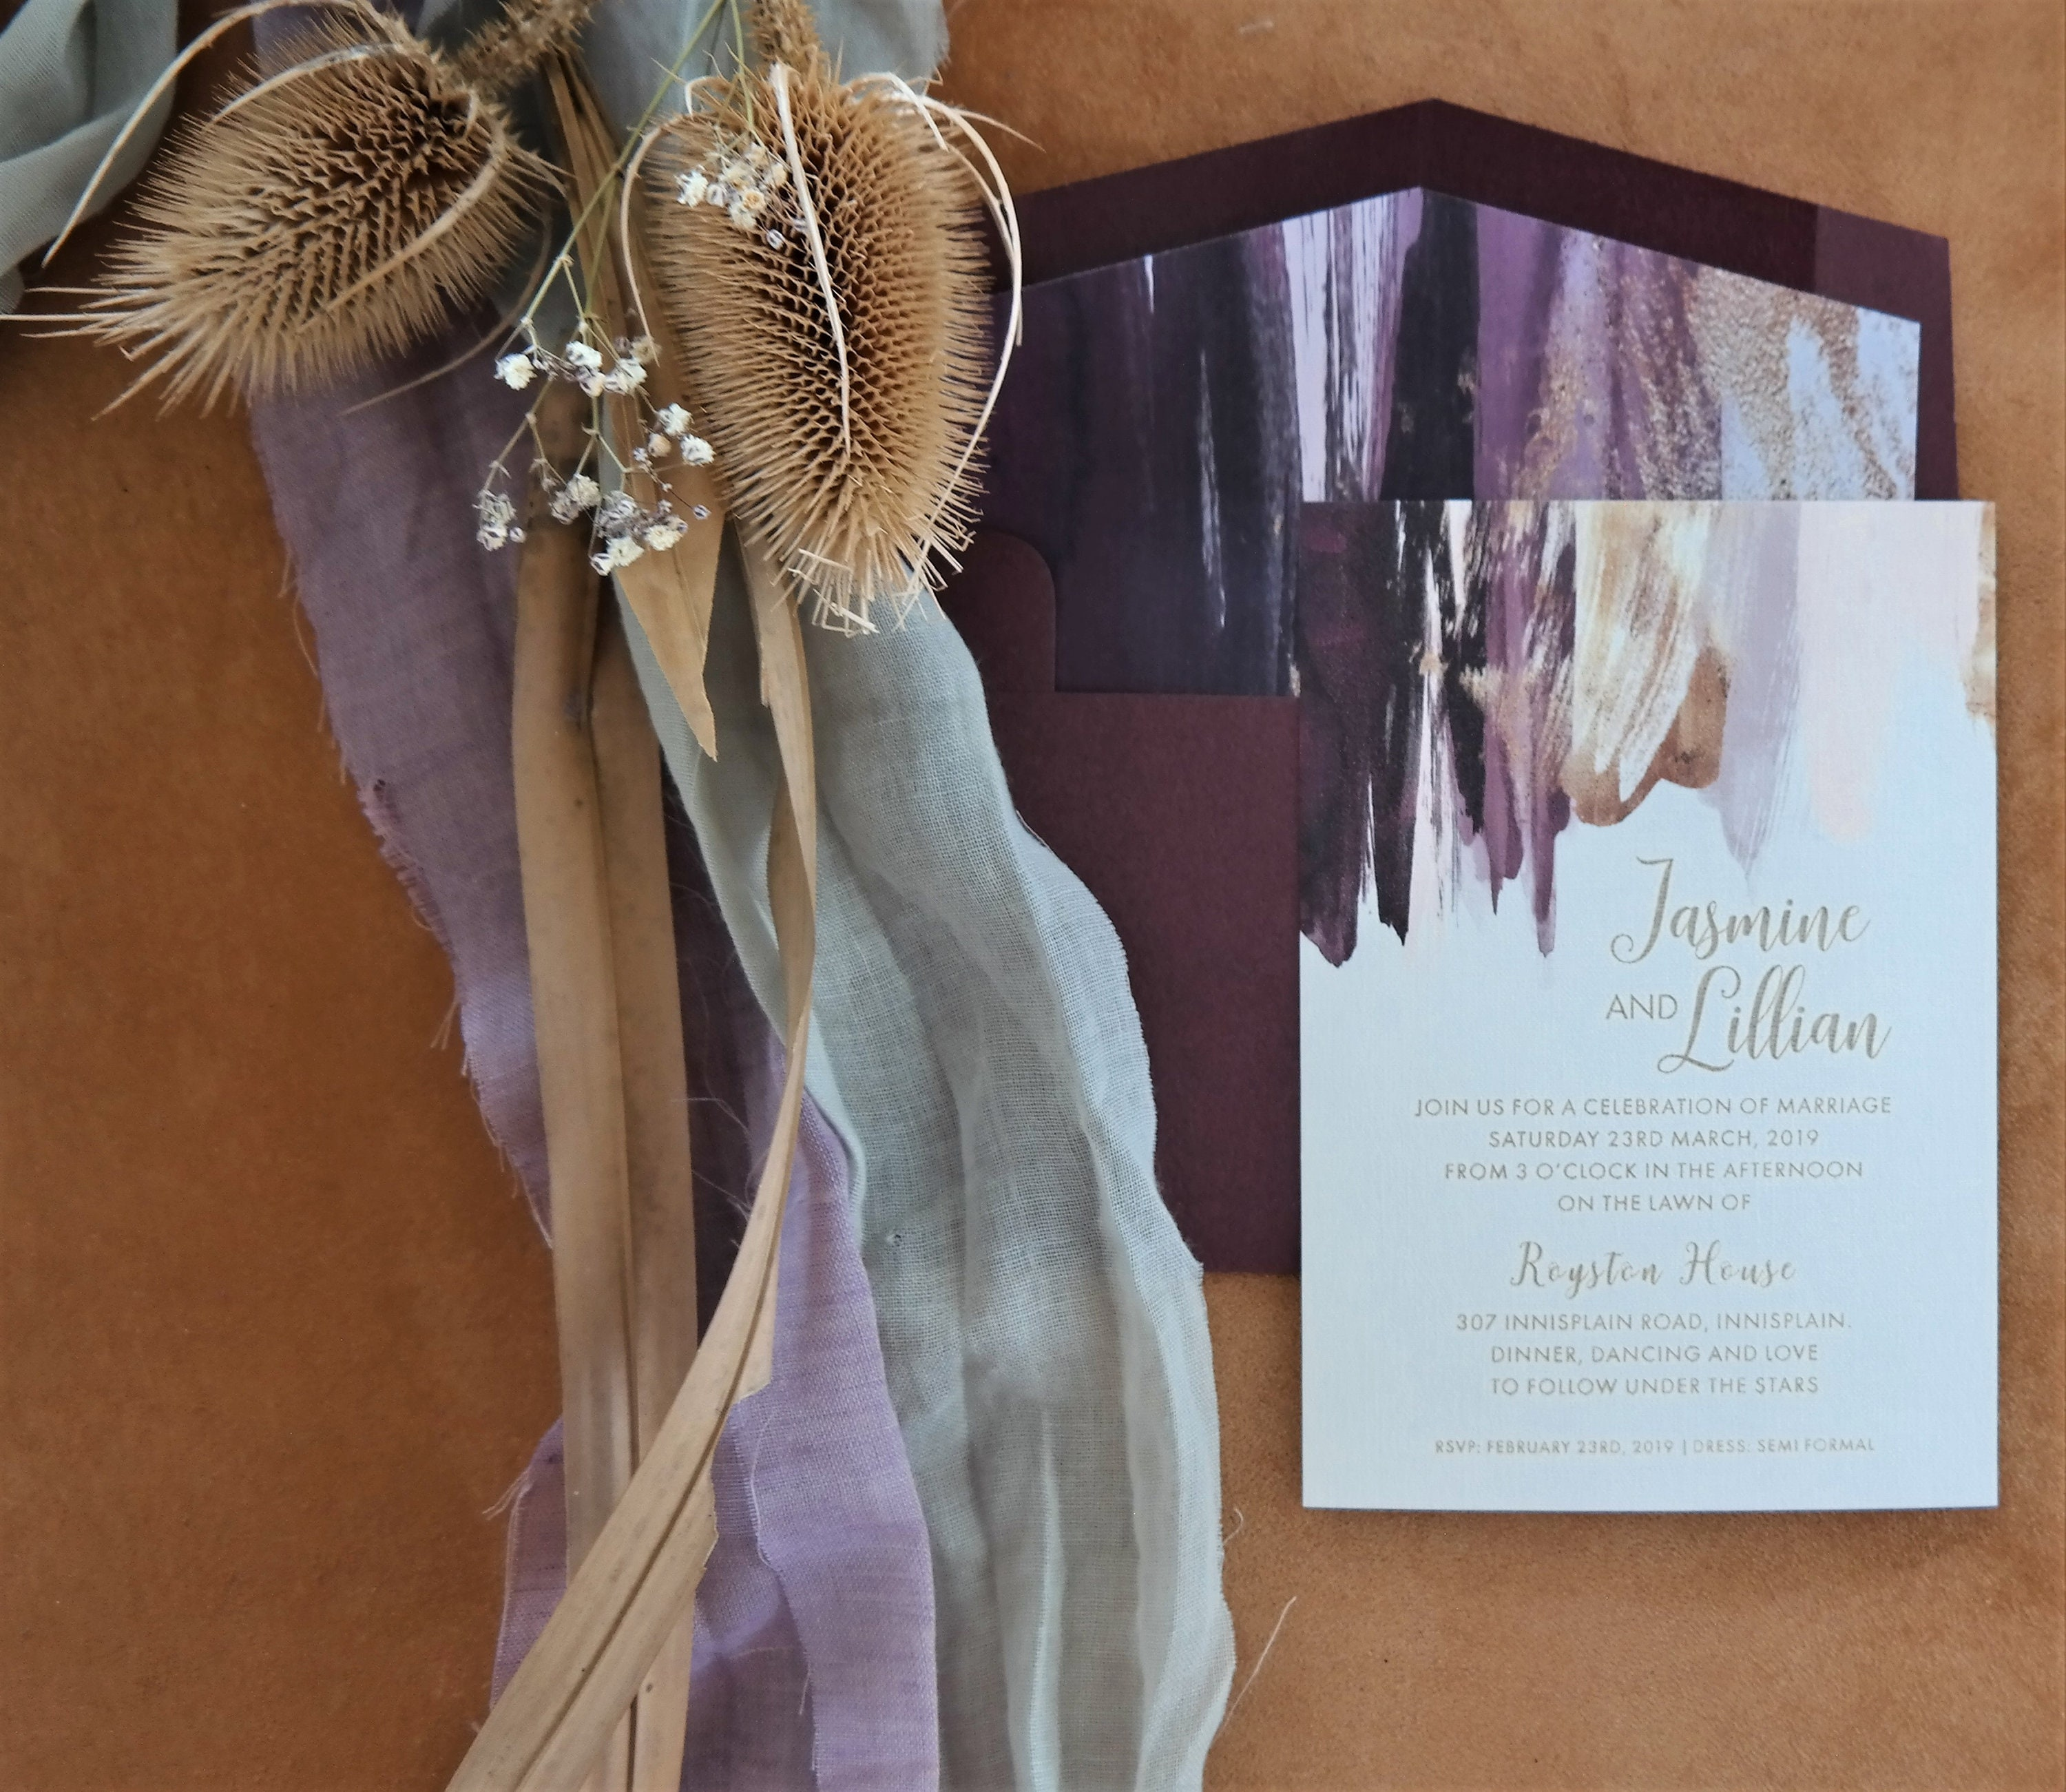 10x PERSONALISED RUSTIC FLORAL WEDDING INVITATIONS LILAC FEATHER PRINT INVITES